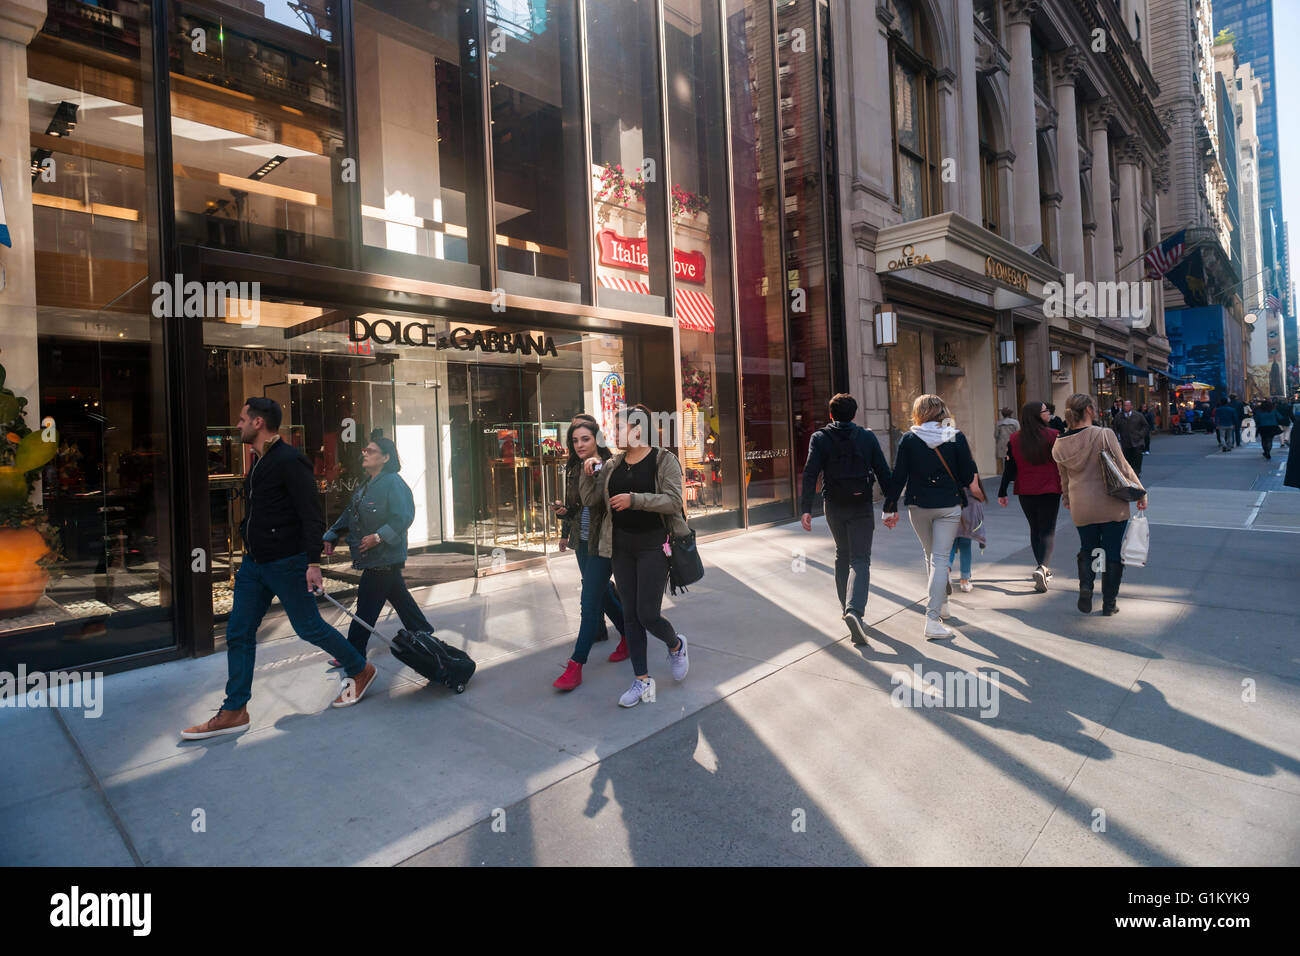 fc25f5ce09 Shoppers pass the Dolce and Gabbana store on Fifth Avenue in Midtown  Manhattan in New York